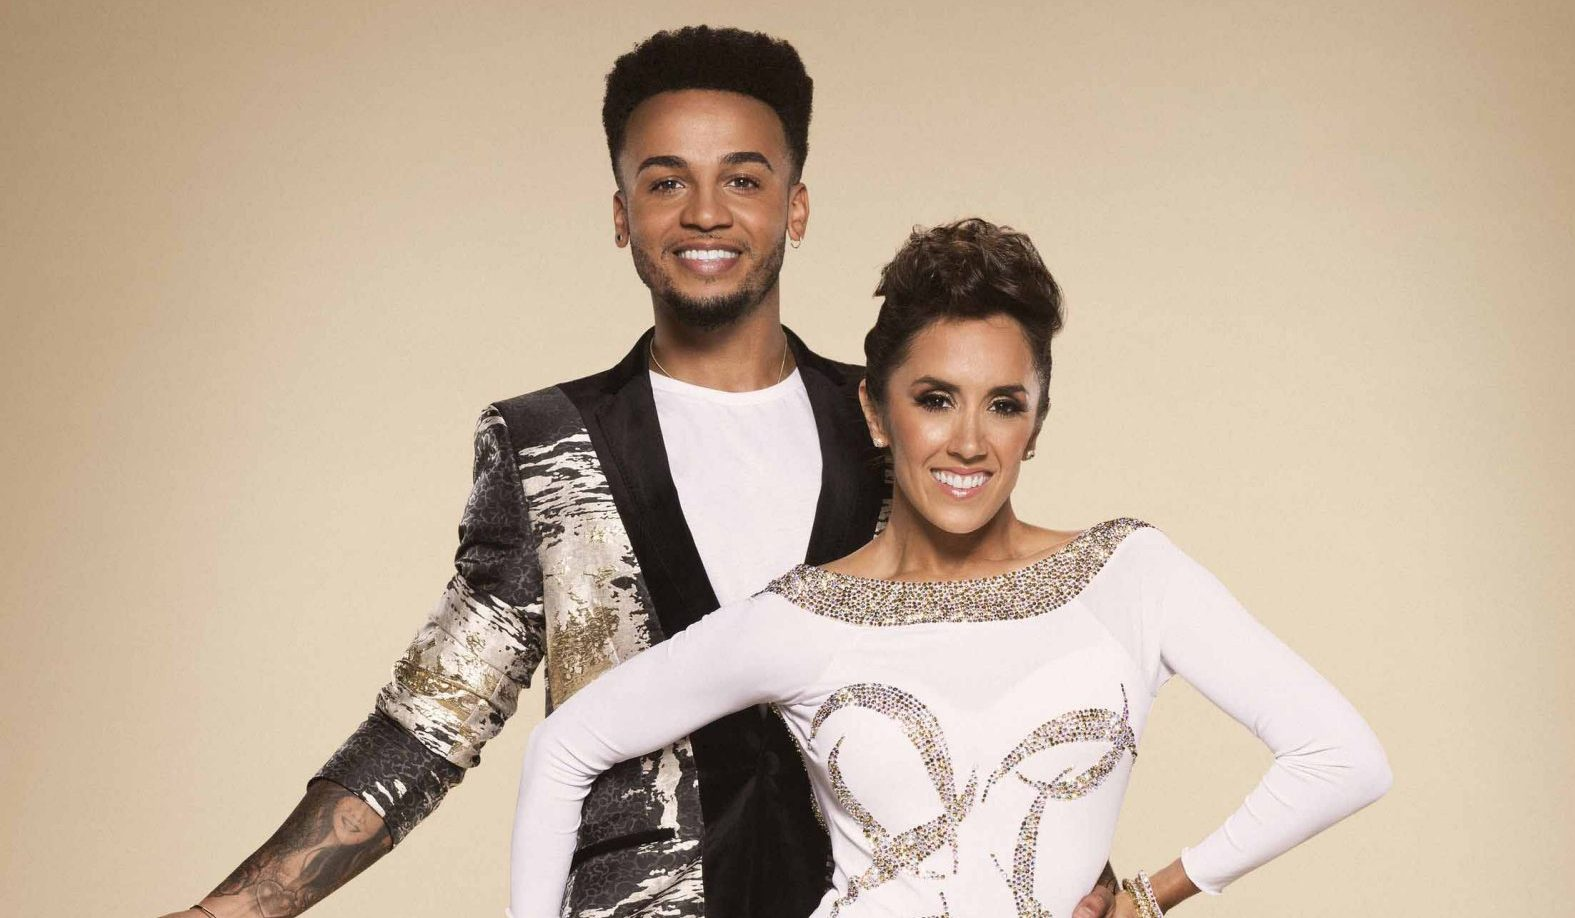 STRICTLY LAURA FOX Undated BBC handout photo of Janette Manrara with her celebrity partner Aston Merrygold who are appearing in this year's BBC1 dance contest, Strictly Come Dancing. PRESS ASSOCIATION Photo. Issue date: Tuesday September 19, 2017. See PA story SHOWBIZ Strictly. Photo credit should read: Ray Burmiston/BBC/PA Wire NOTE TO EDITORS: Not for use more than 21 days after issue. You may use this picture without charge only for the purpose of publicising or reporting on current BBC programming, personnel or other BBC output or activity within 21 days of issue. Any use after that time MUST be cleared through BBC Picture Publicity. Please credit the image to the BBC and any named photographer or independent programme maker, as described in the caption.